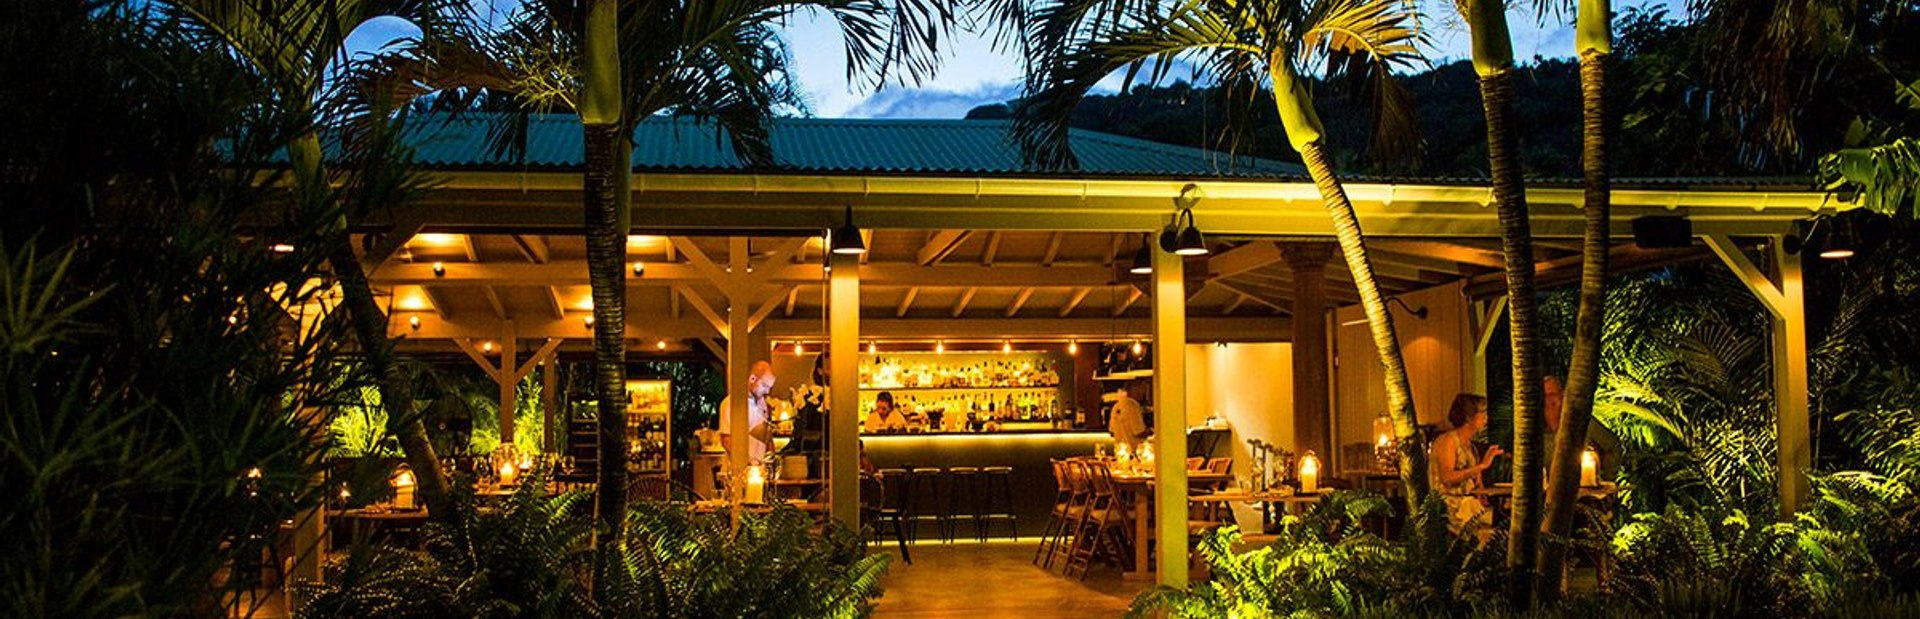 10 Of The Best Places To Eat In St. Barts In 2021